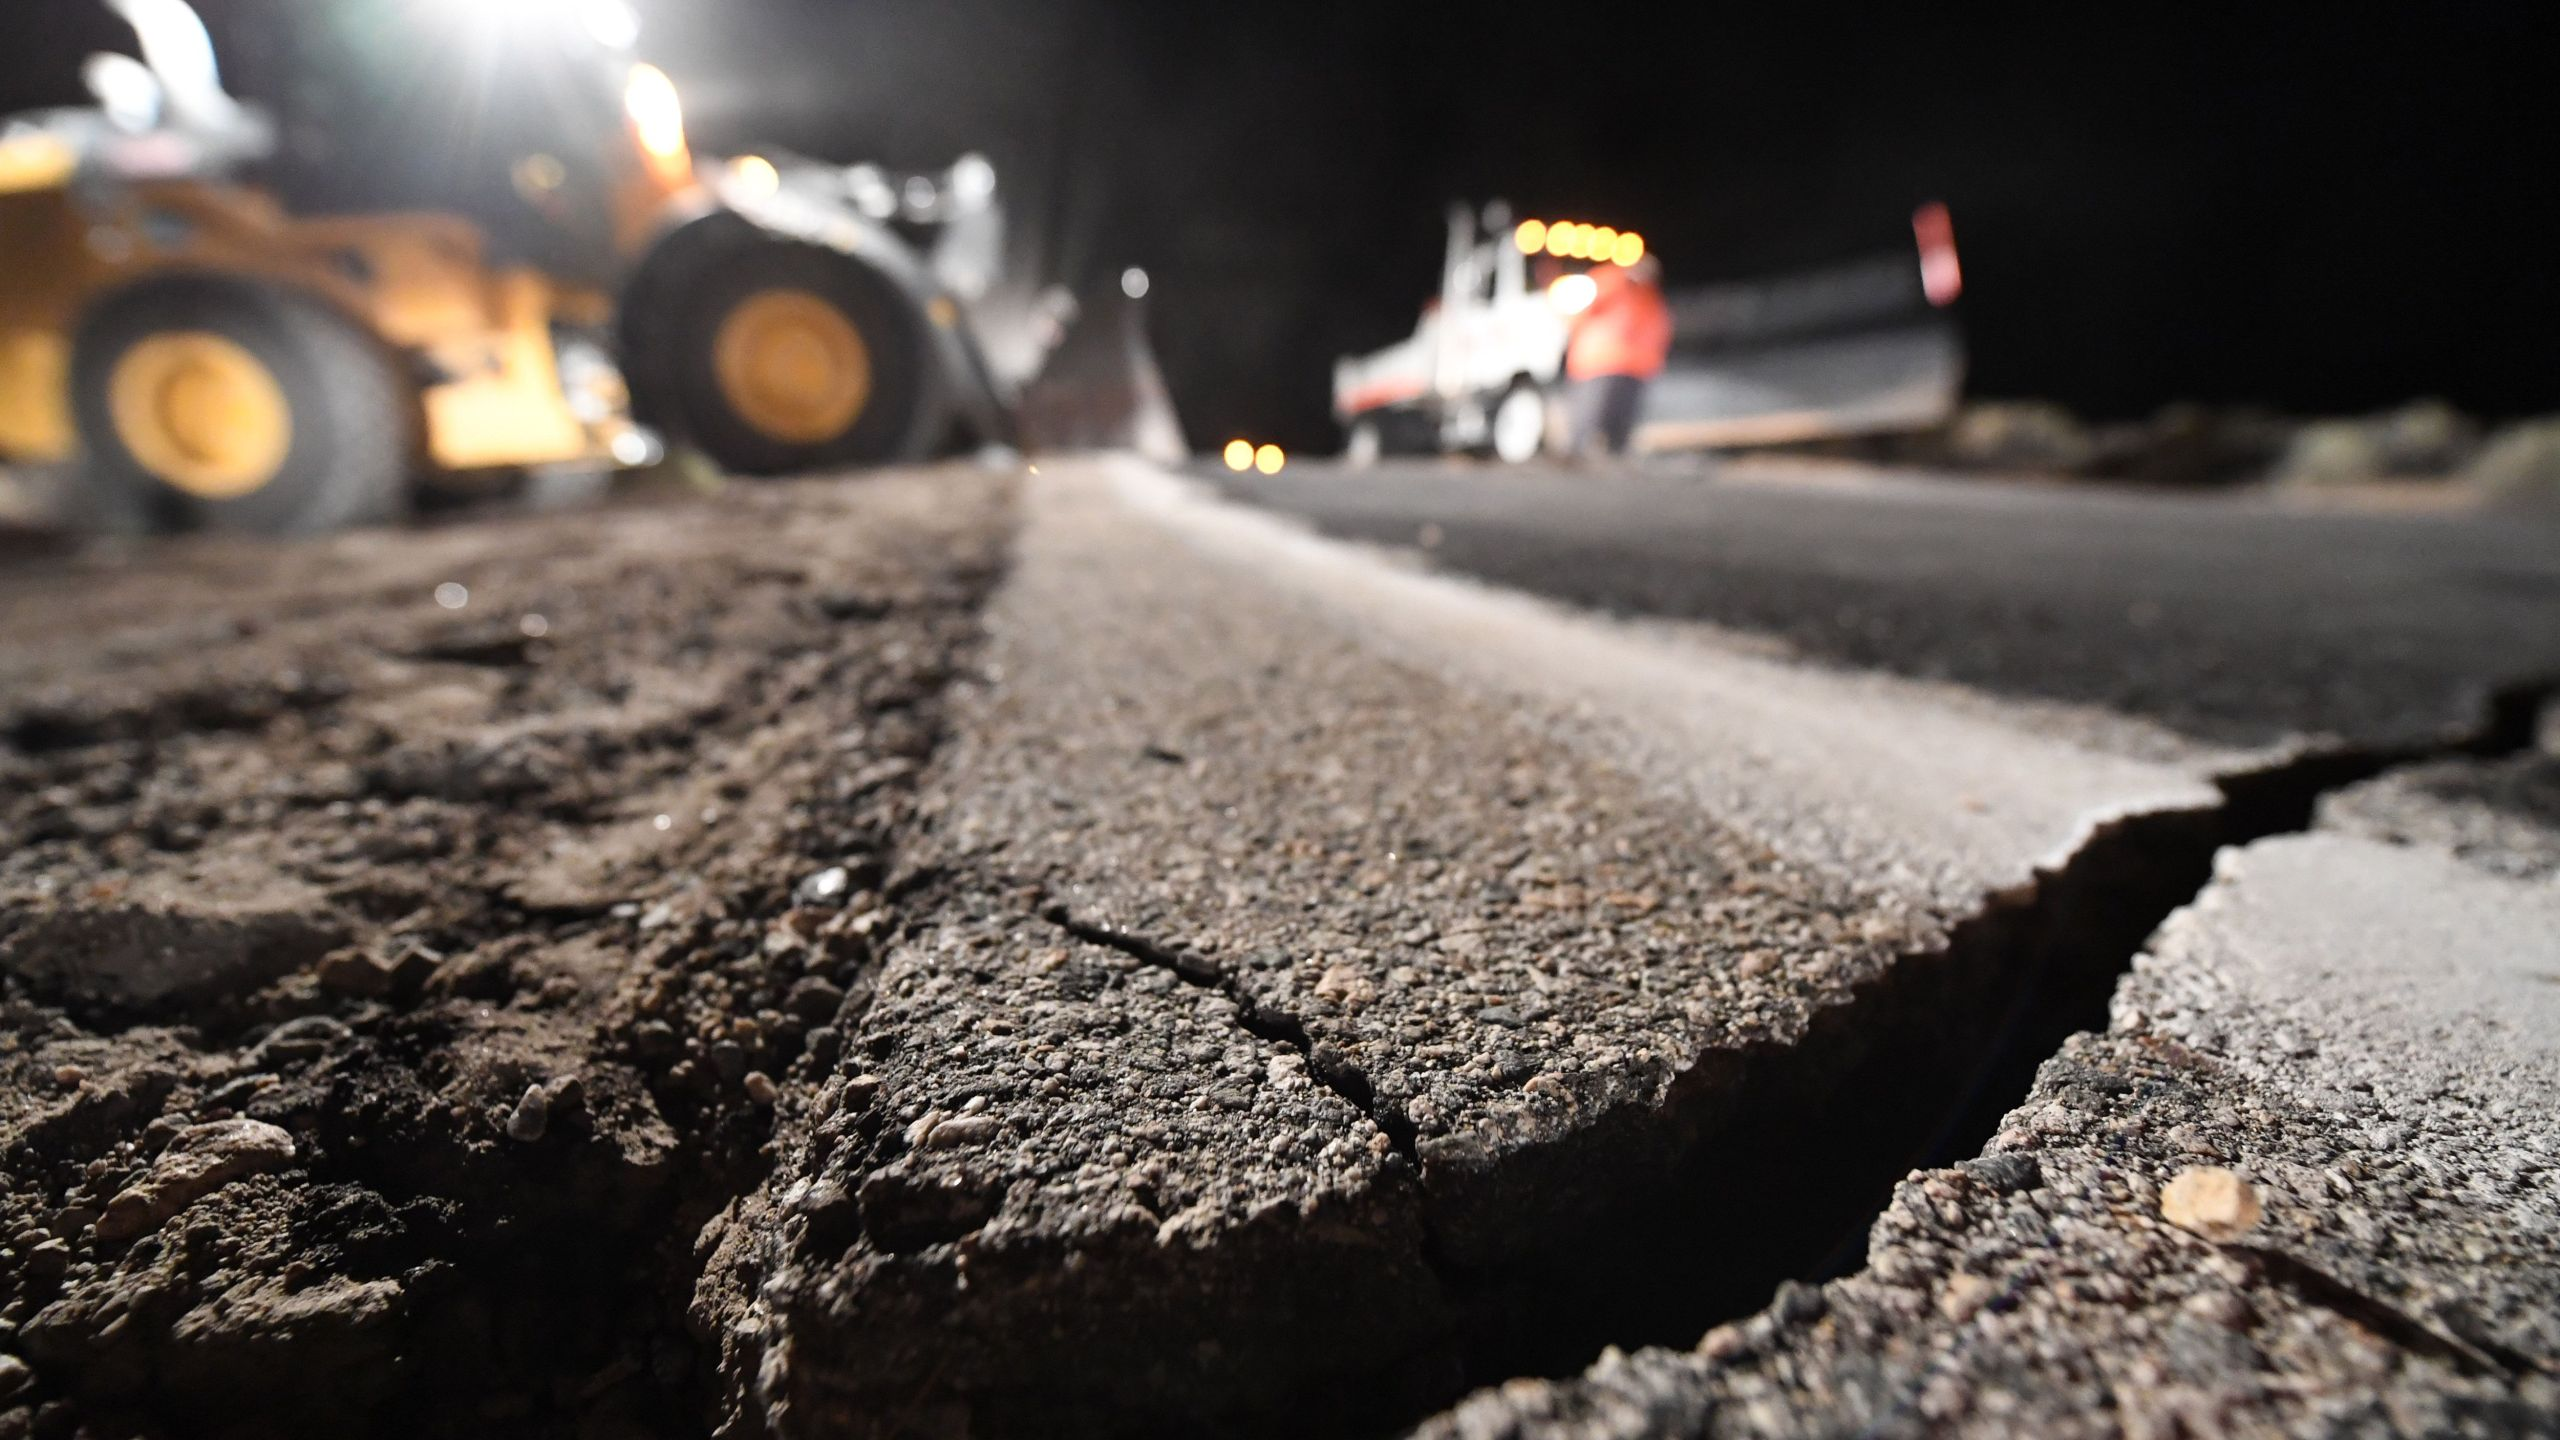 Highway workers repair a hole that opened in the road as a result of the July 5, 2019 earthquake, in Ridgecrest, California. (Credit: ROBYN BECK/AFP/Getty Images)